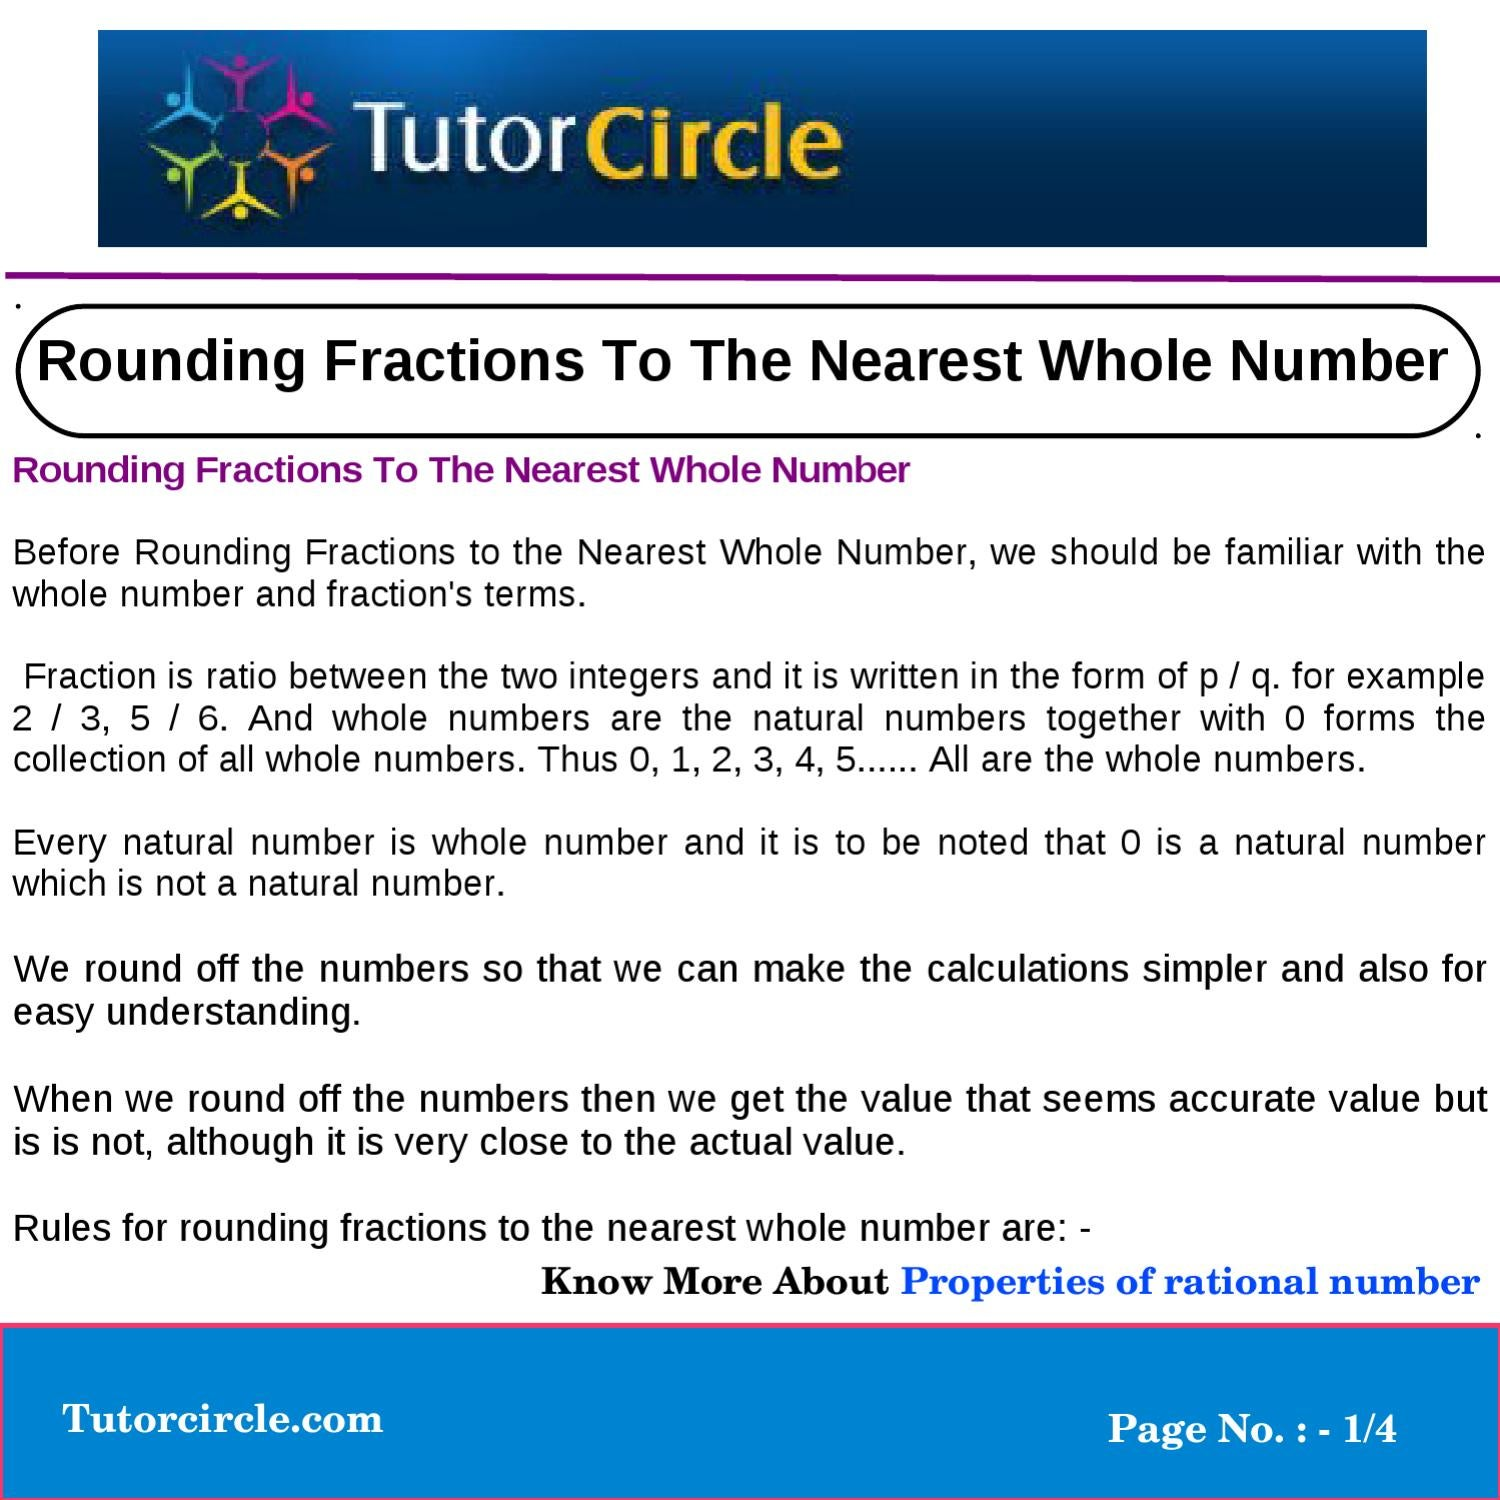 Rounding Fractions To The Nearest Whole Number By Yatendra Parashar